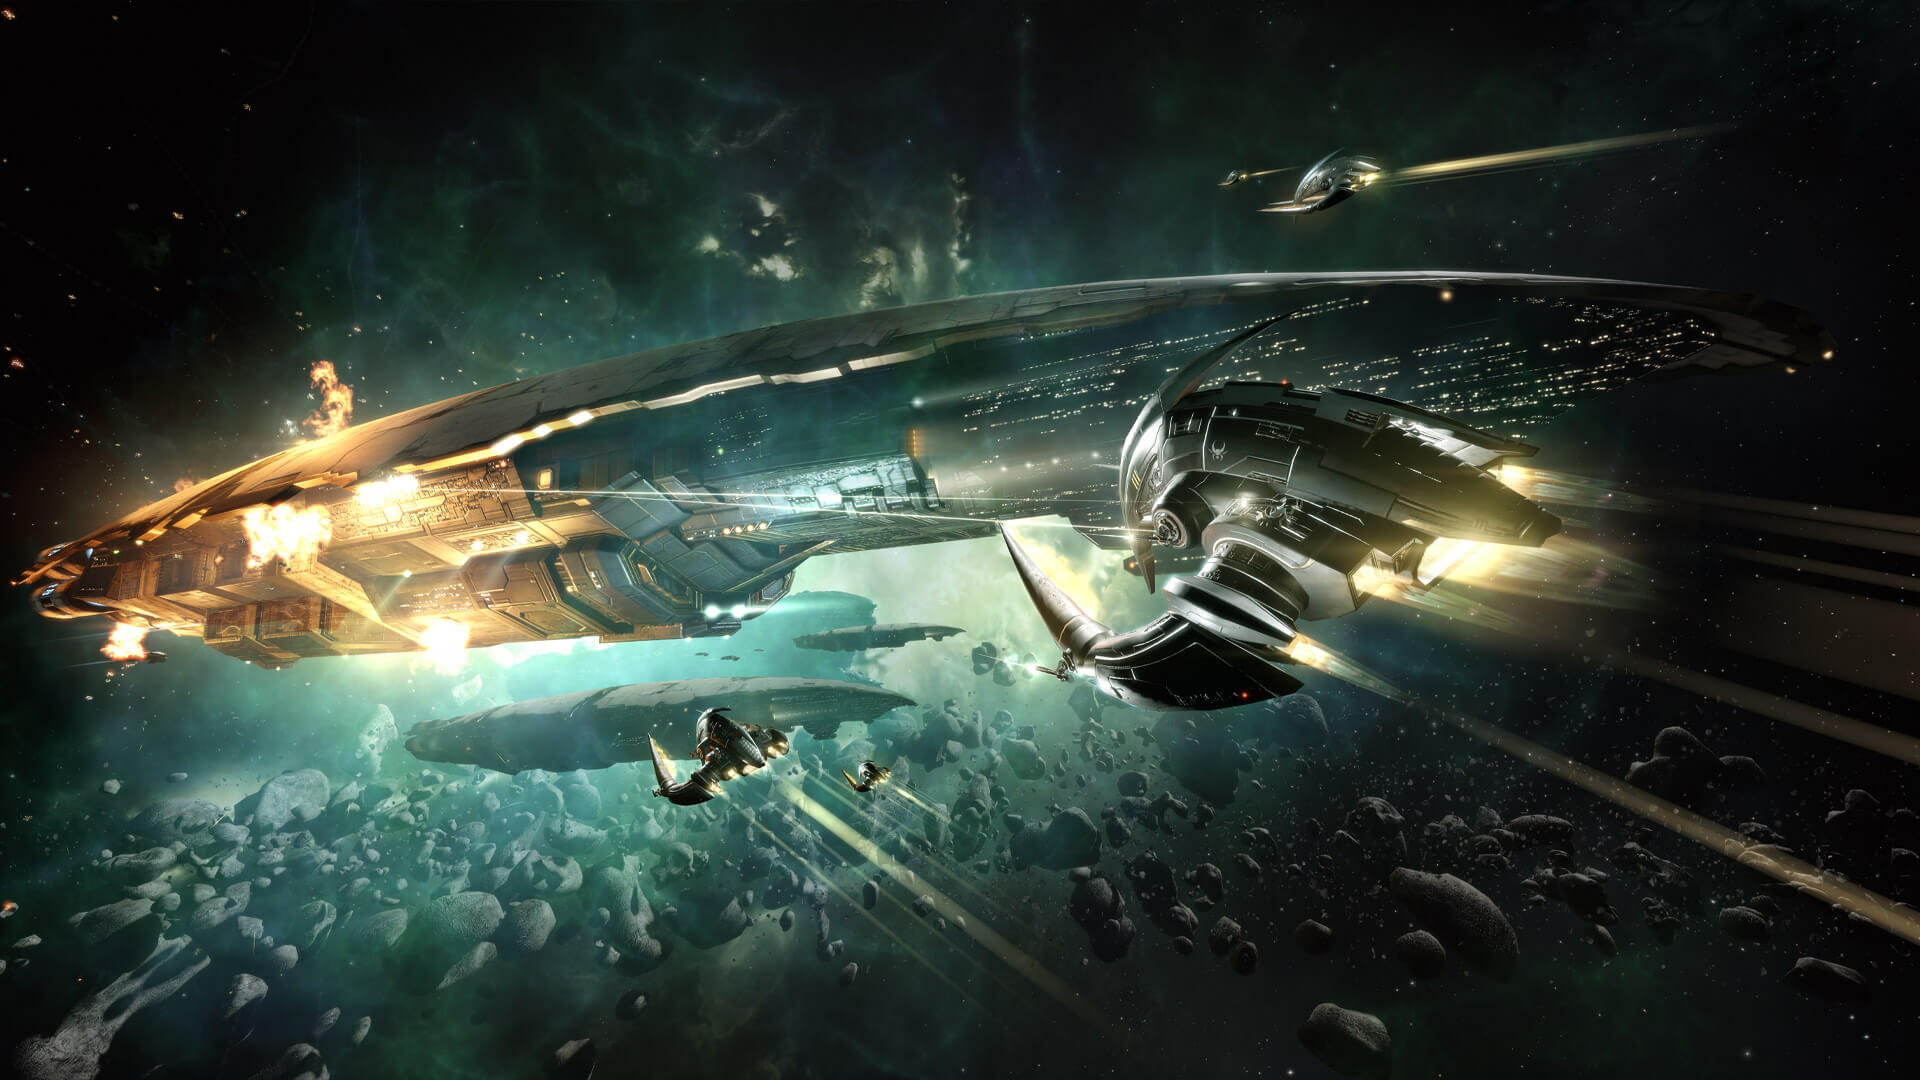 Space Game - MMORPG fight with smaller spaceships attacking a giant spaceship